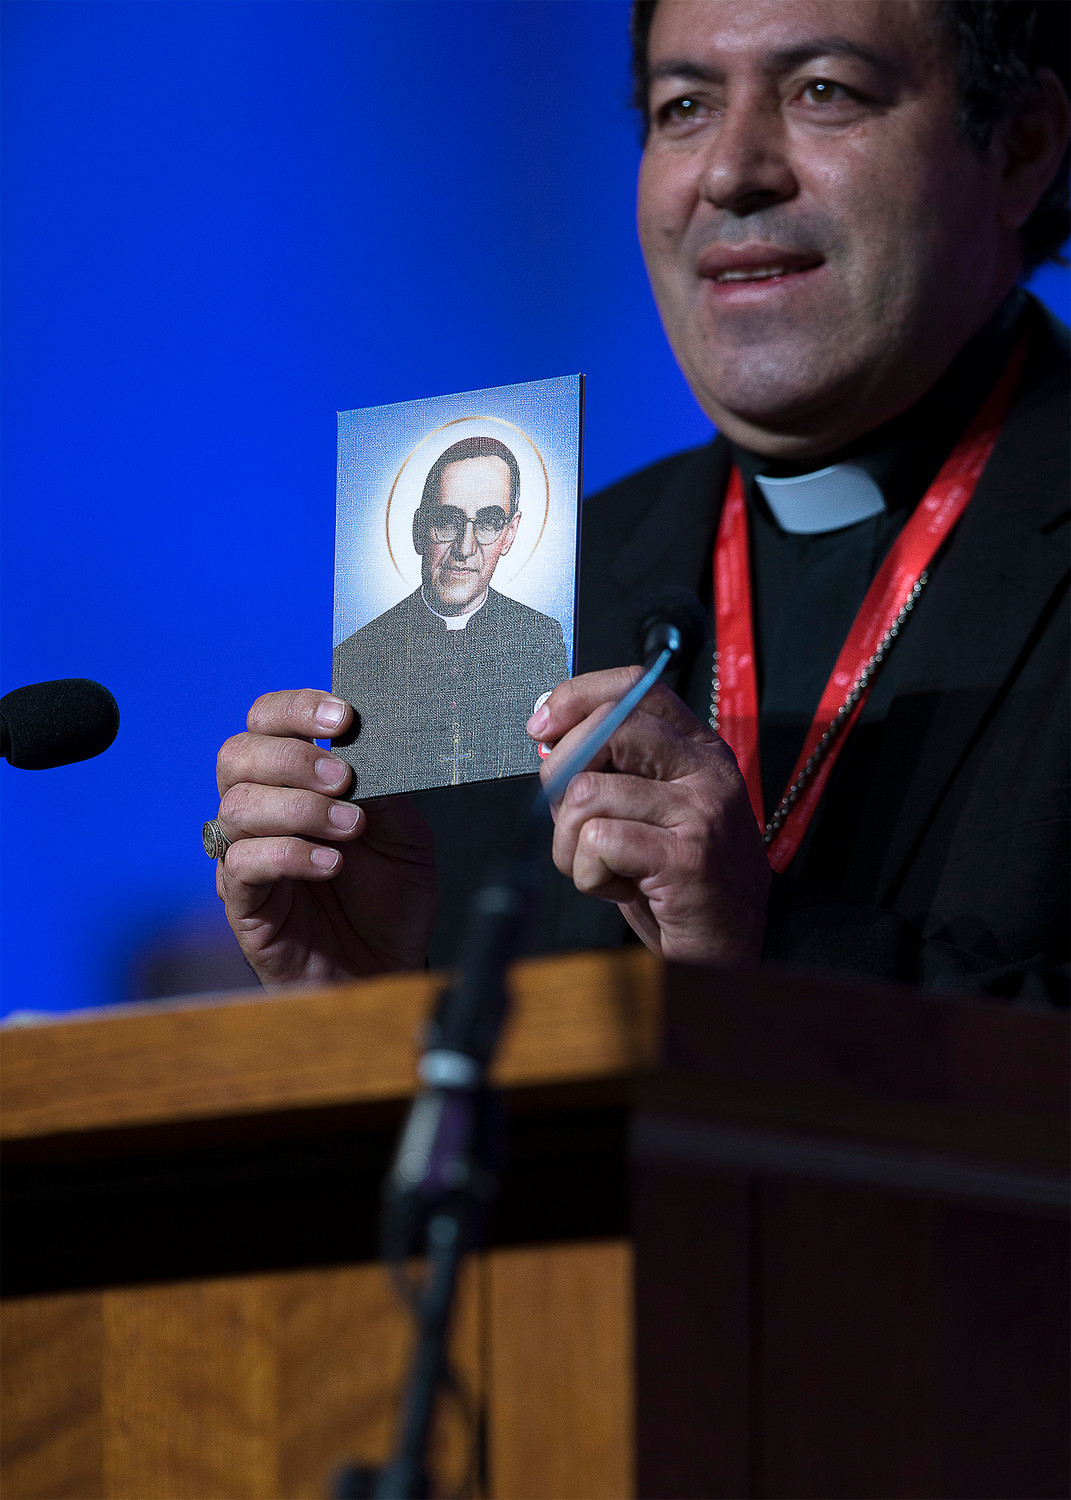 Bishop Constantino Barrera Morales of Sonsonate, El Salvador, talks about the Oct. 14 canonization of Blessed Oscar Romero during a Sept. 23 presentation at the Fifth National Encuentro in Grapevine, Texas.